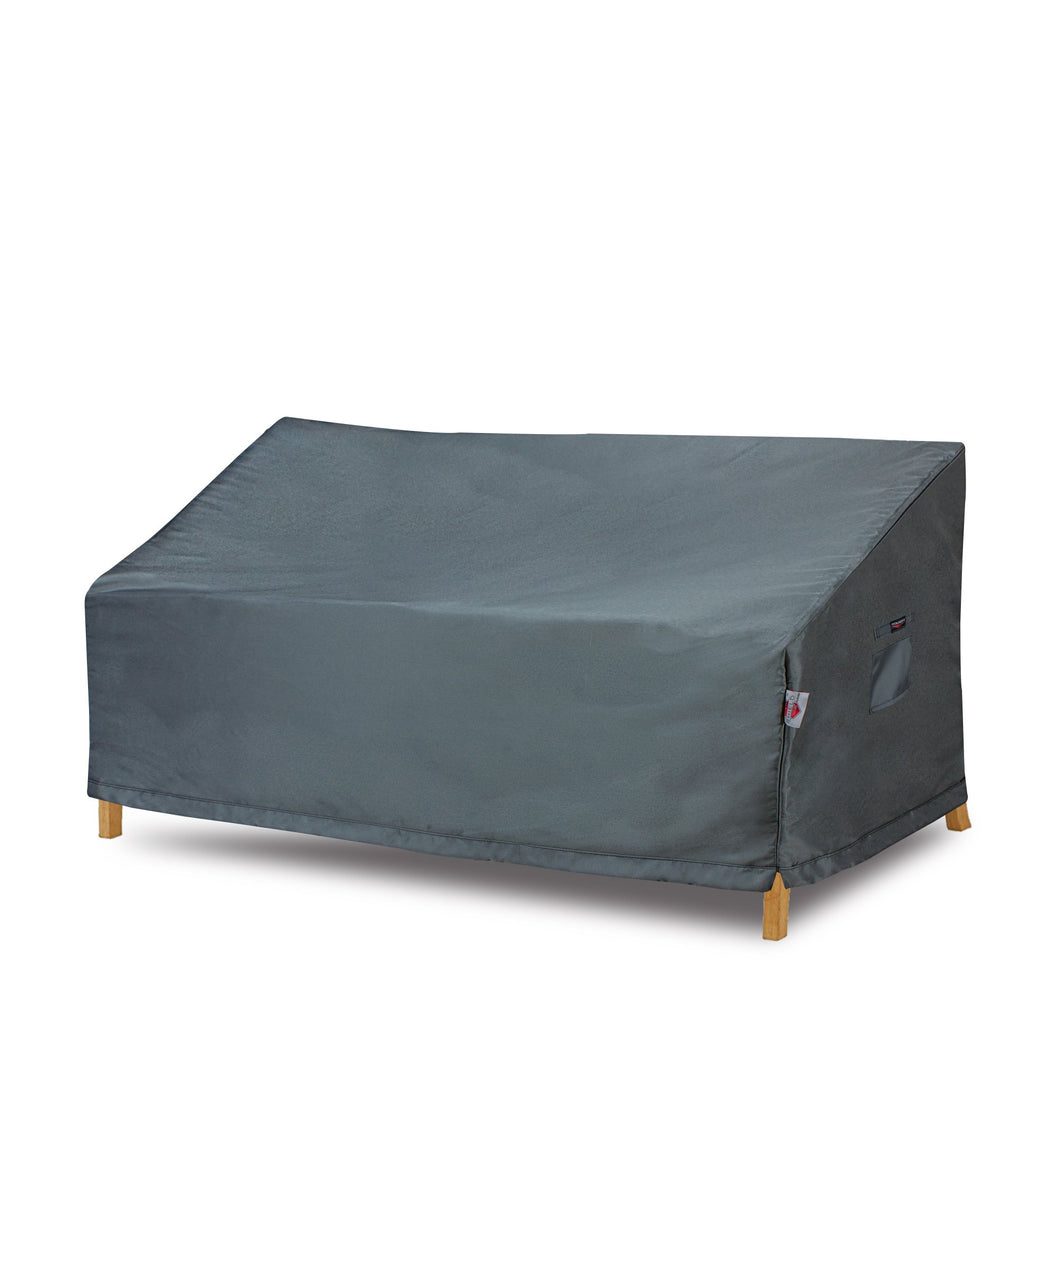 Sofa Cover Medium - 86